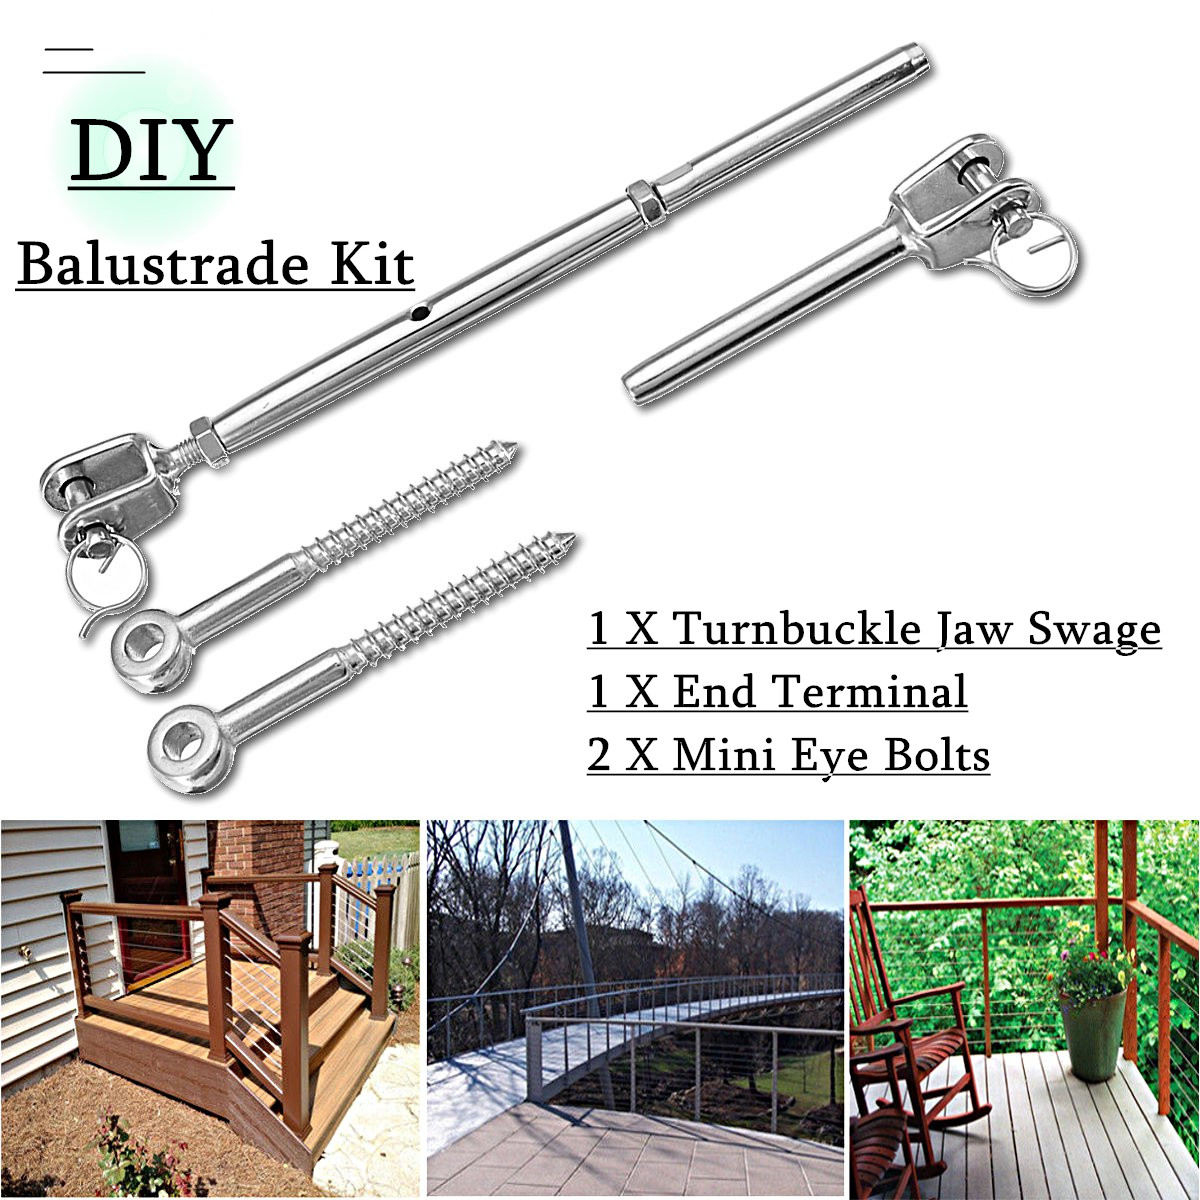 Stainless Steel Wire Rope DIY Balustrade Kit Jaw Swage Fork Terminal Eye Bolts Terminal Turnbuckle for Indoor And Outdoor in Nuts & Bolts from Automobiles